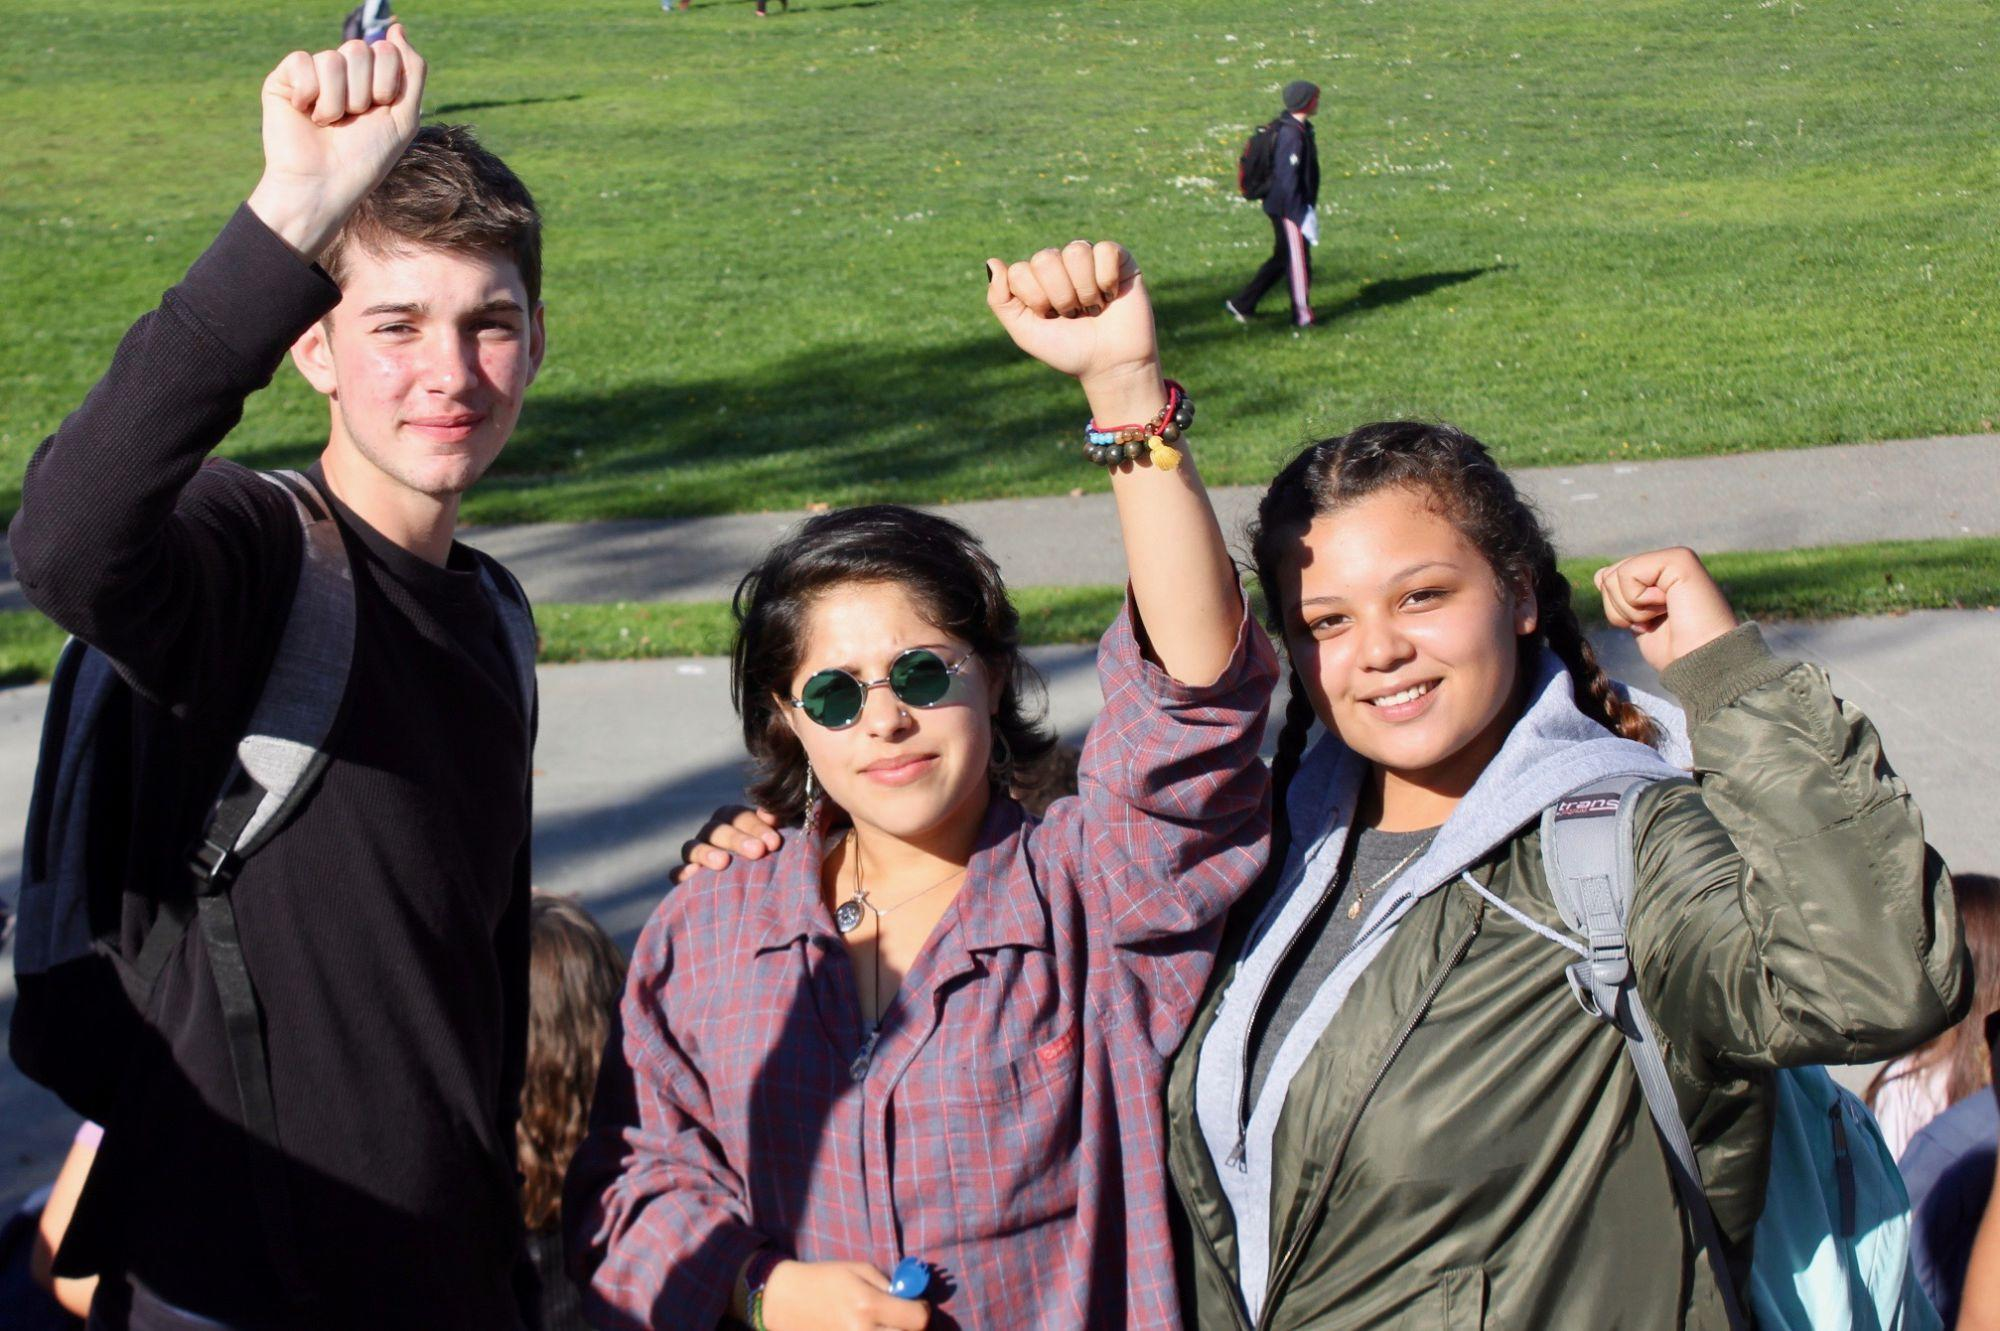 Raising their fists in solidarity with those offended by President-elect Donald Trump's campaign, students attended the Monday protest.